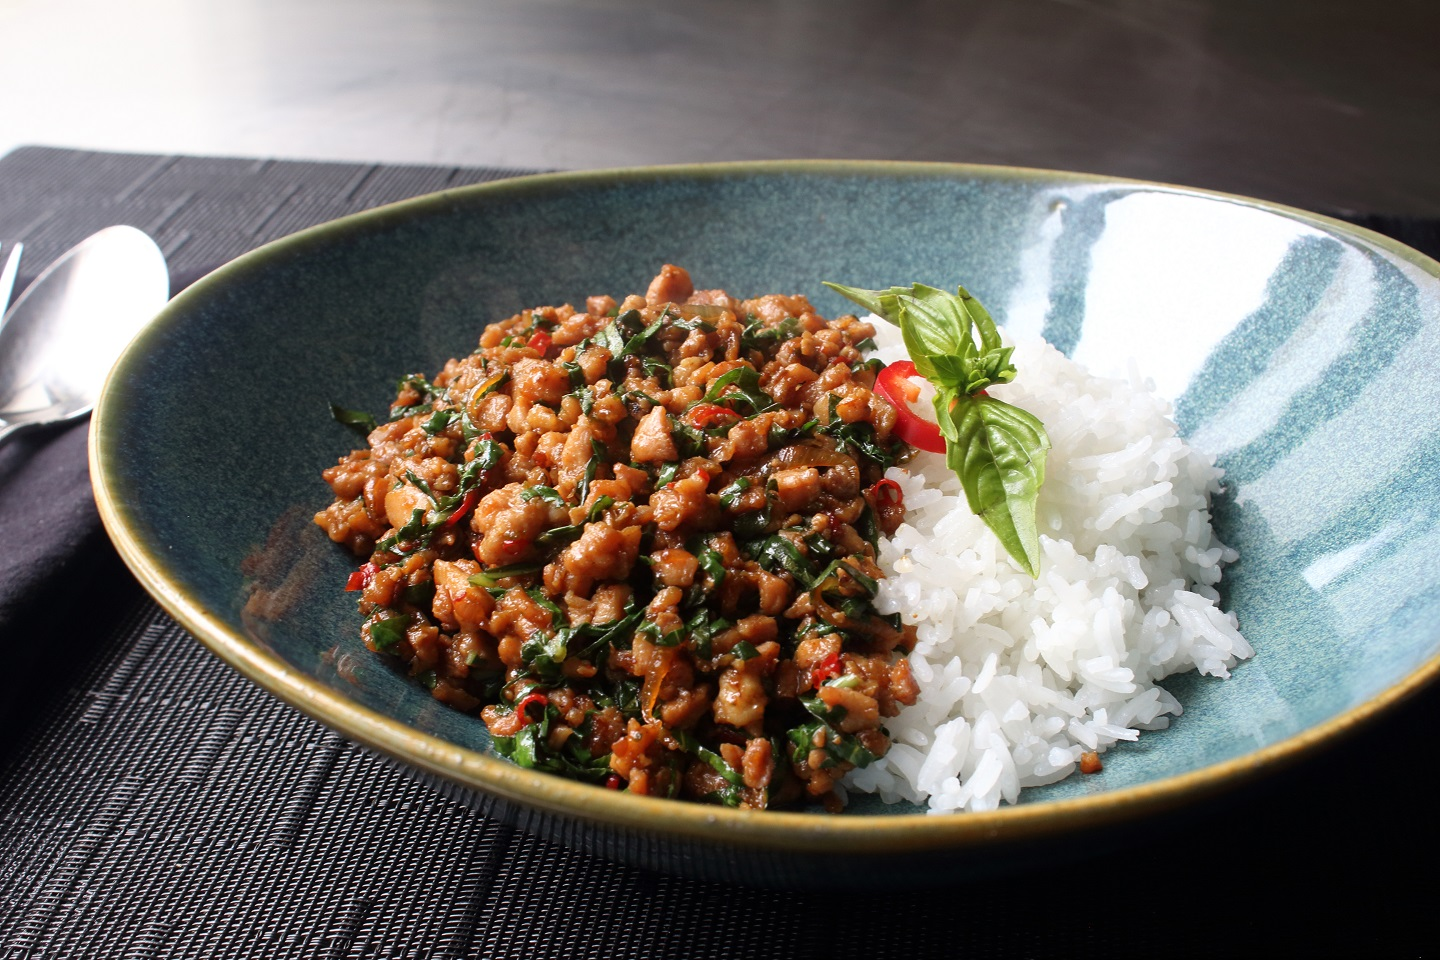 Spicy Thai Basil Chicken (Pad Krapow Gai) Chef John